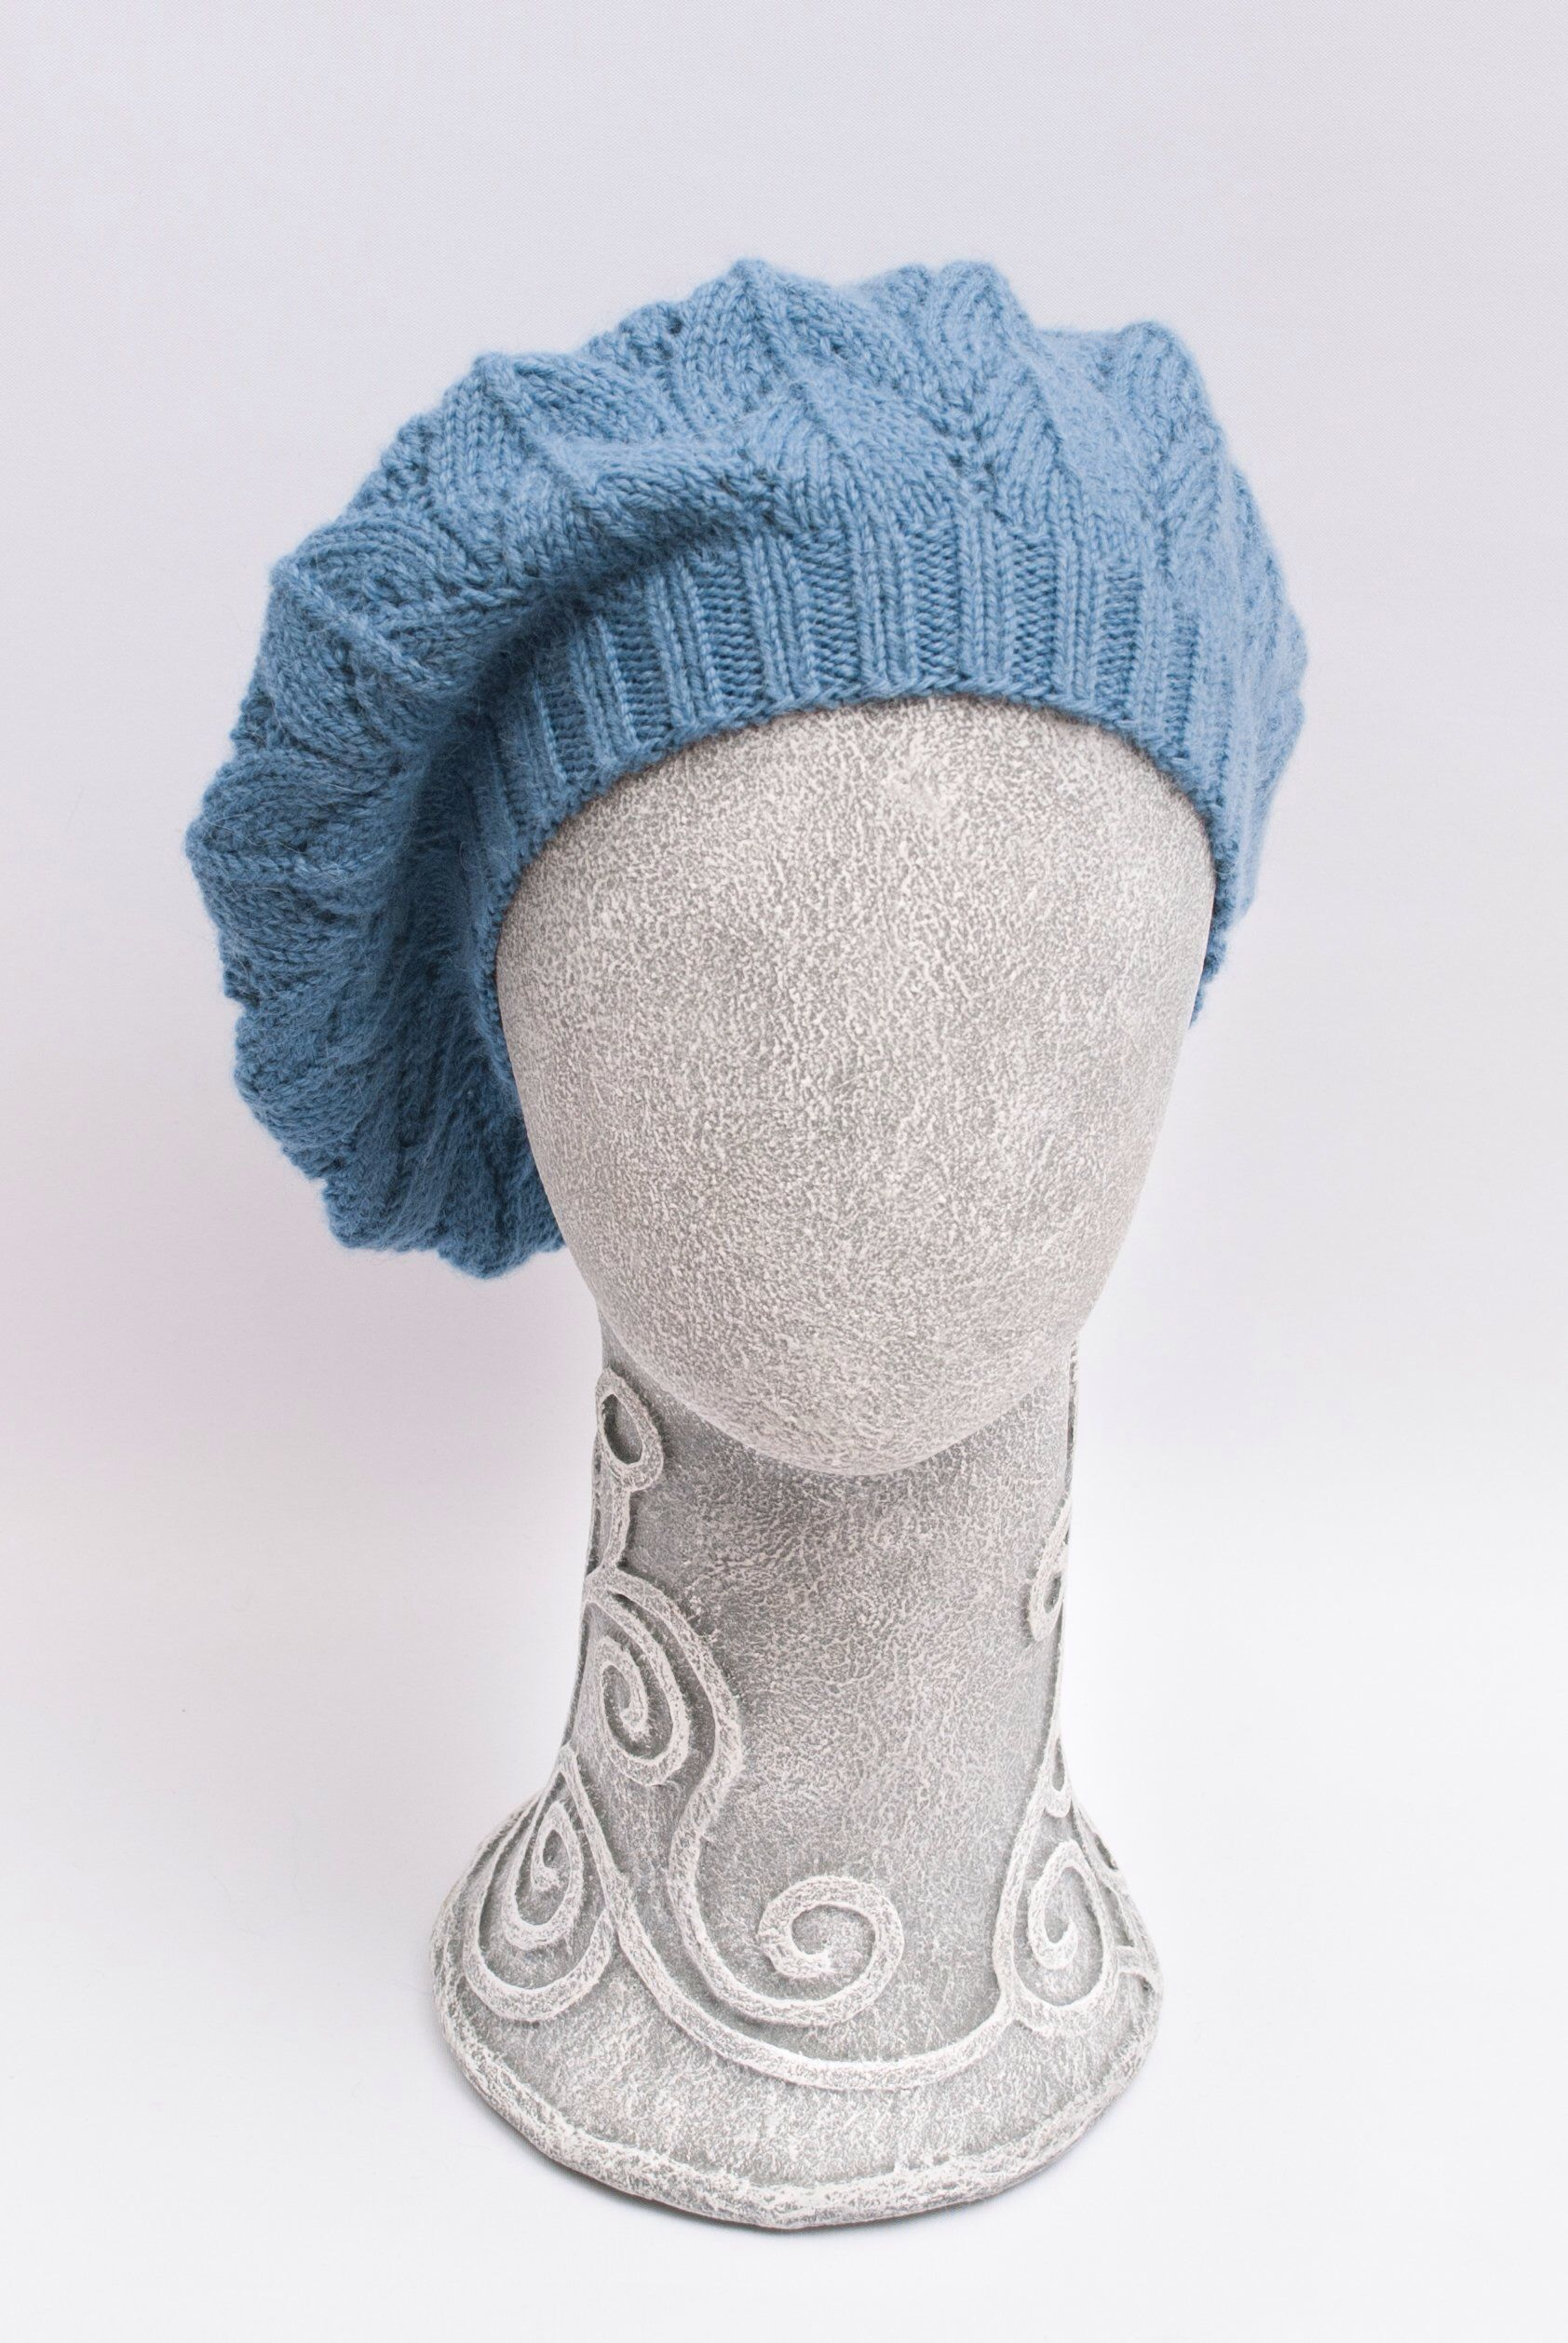 7704343bb67 Slouchy light blue alpaca wool beret. Hand Knit autumn spring hat with lace